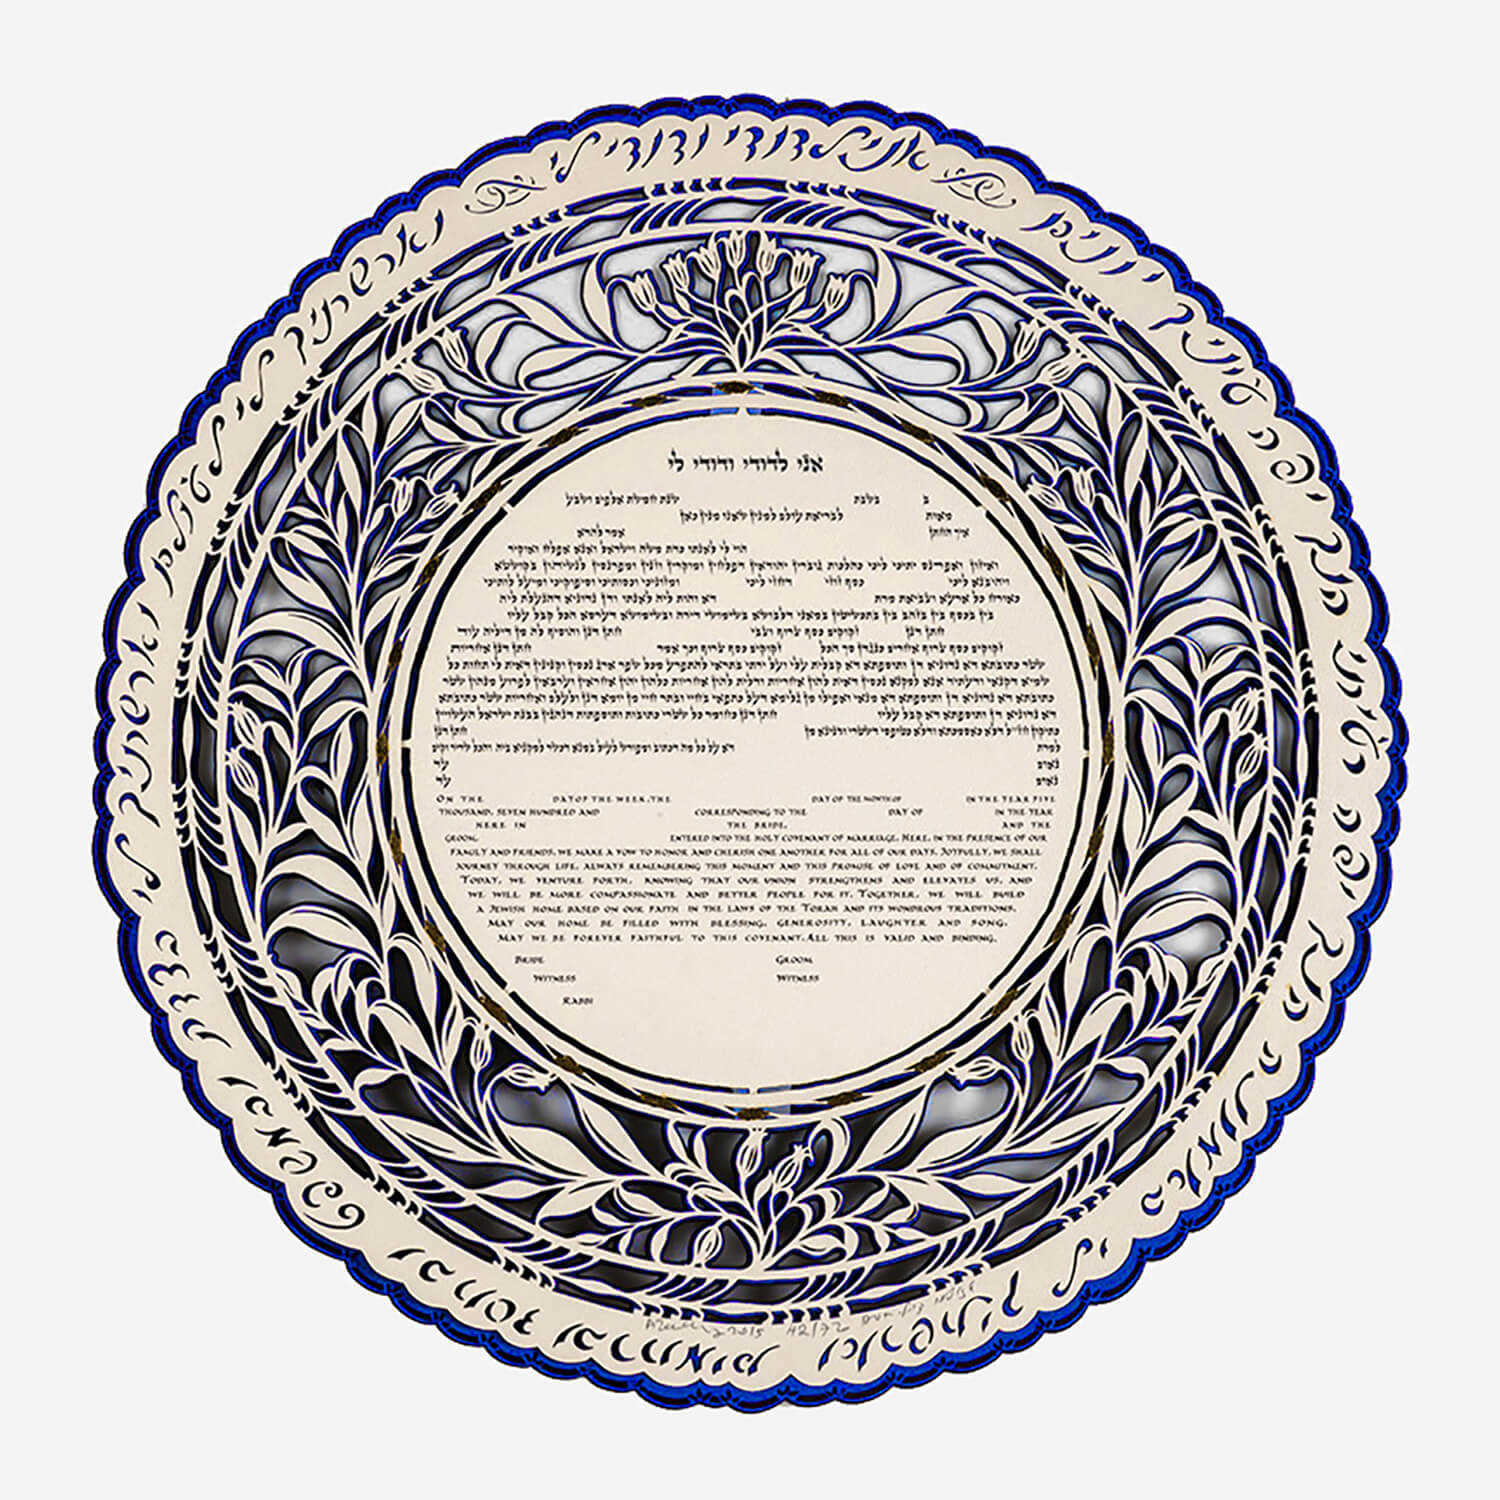 The Silhouette Ketubah